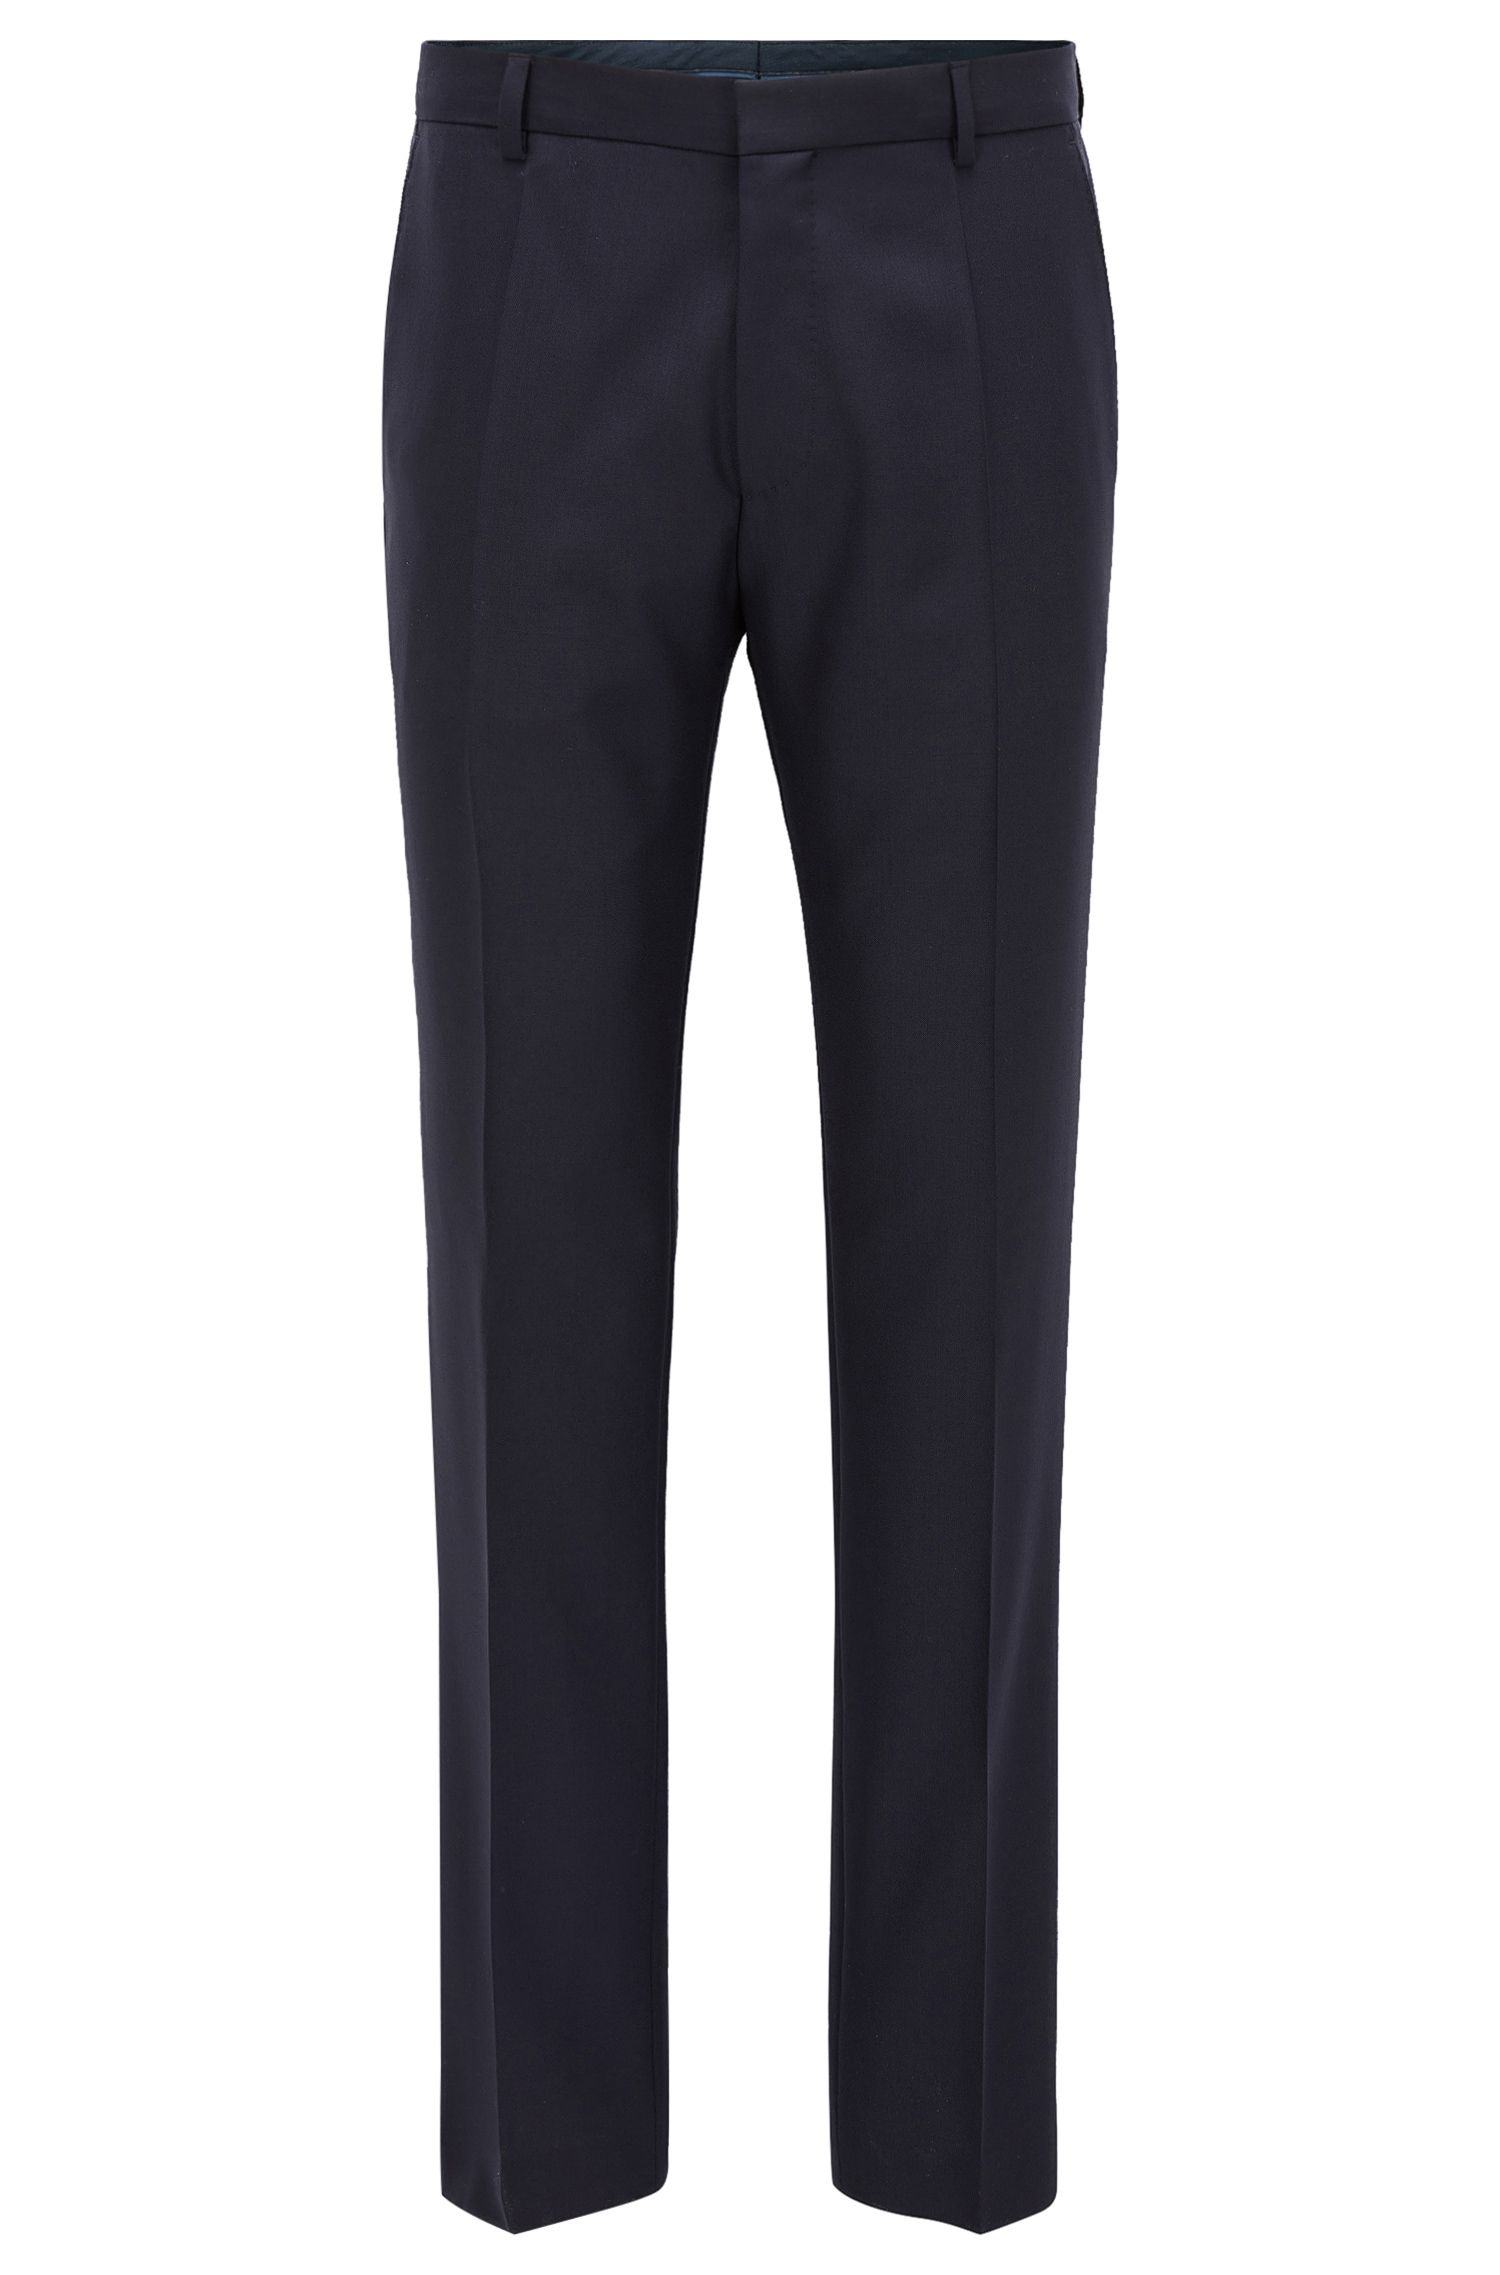 Pantaloni Travel Line slim fit in lana con dettagli innovativi